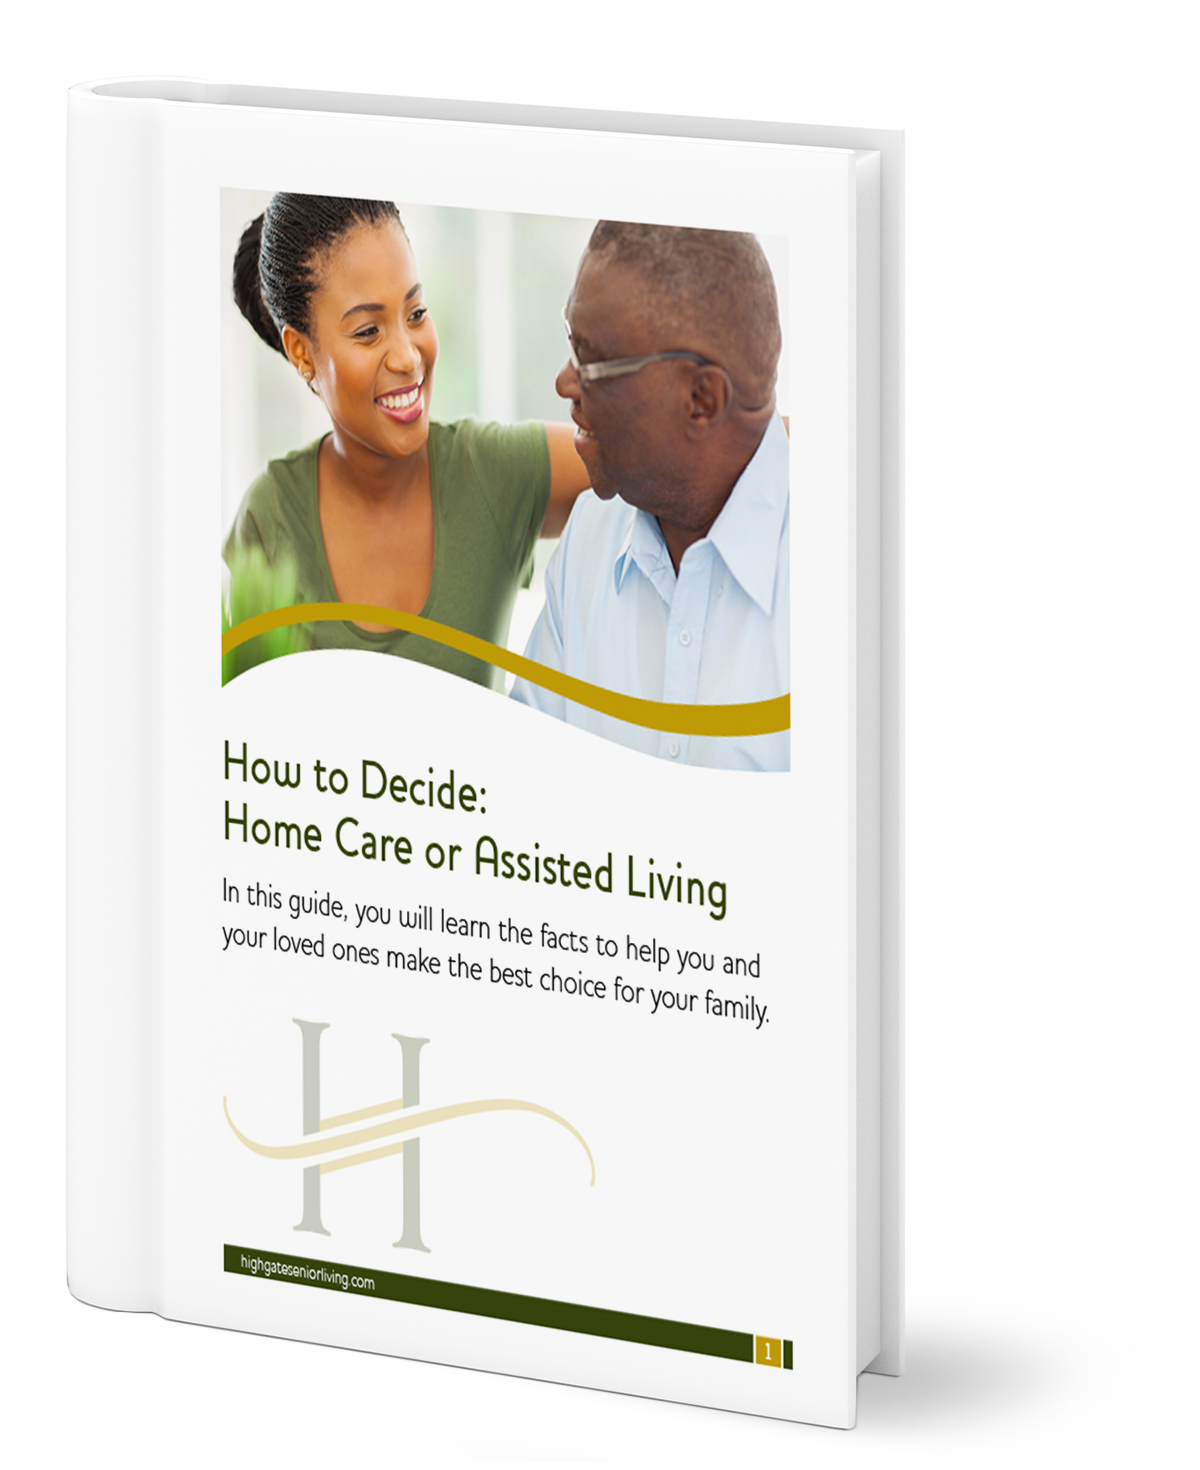 HGE-How to Decide Home Care or Assisted Living-BOOK (1)